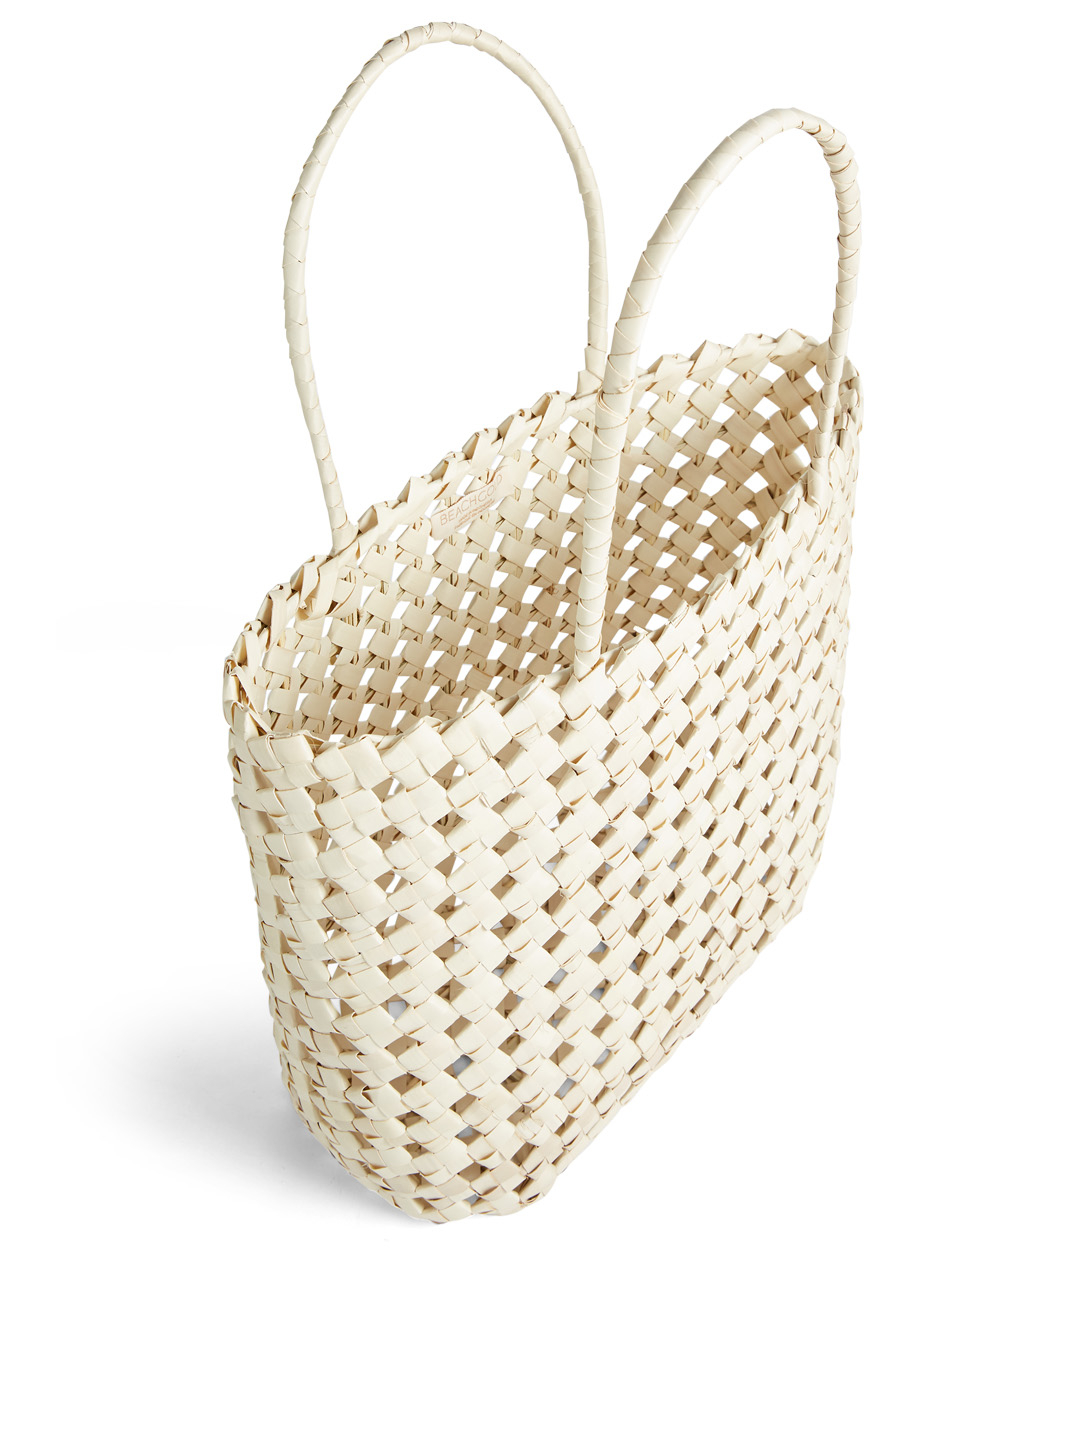 BEACHGOLD Sari Woven Palm Tote Bag H Project Neutral